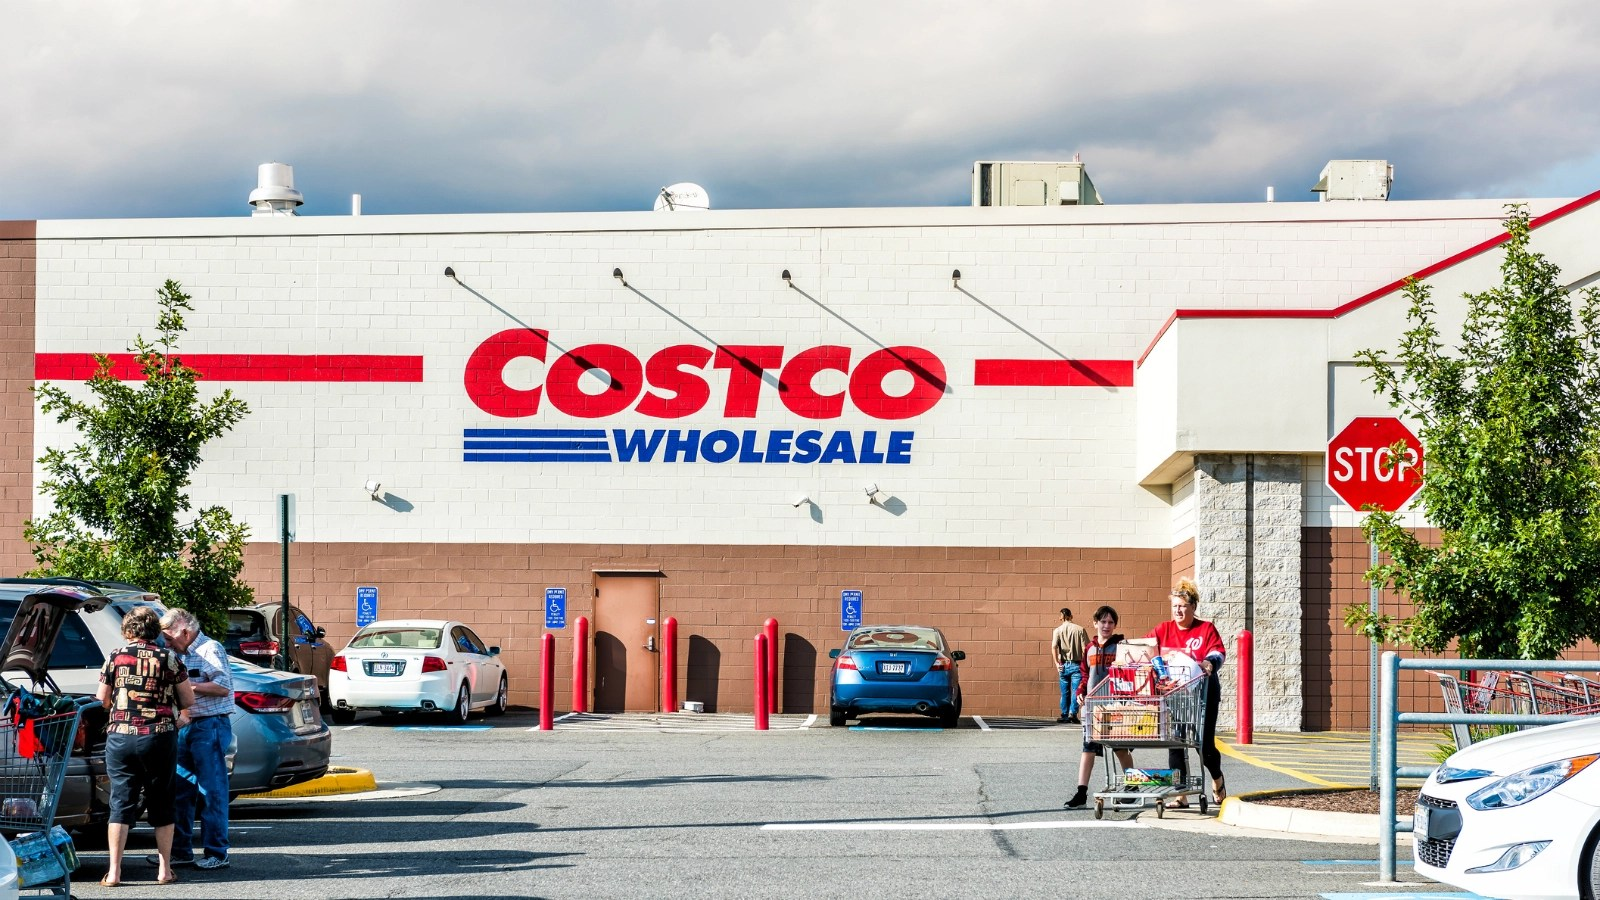 The Best Jewish Food At Costco The Nosher